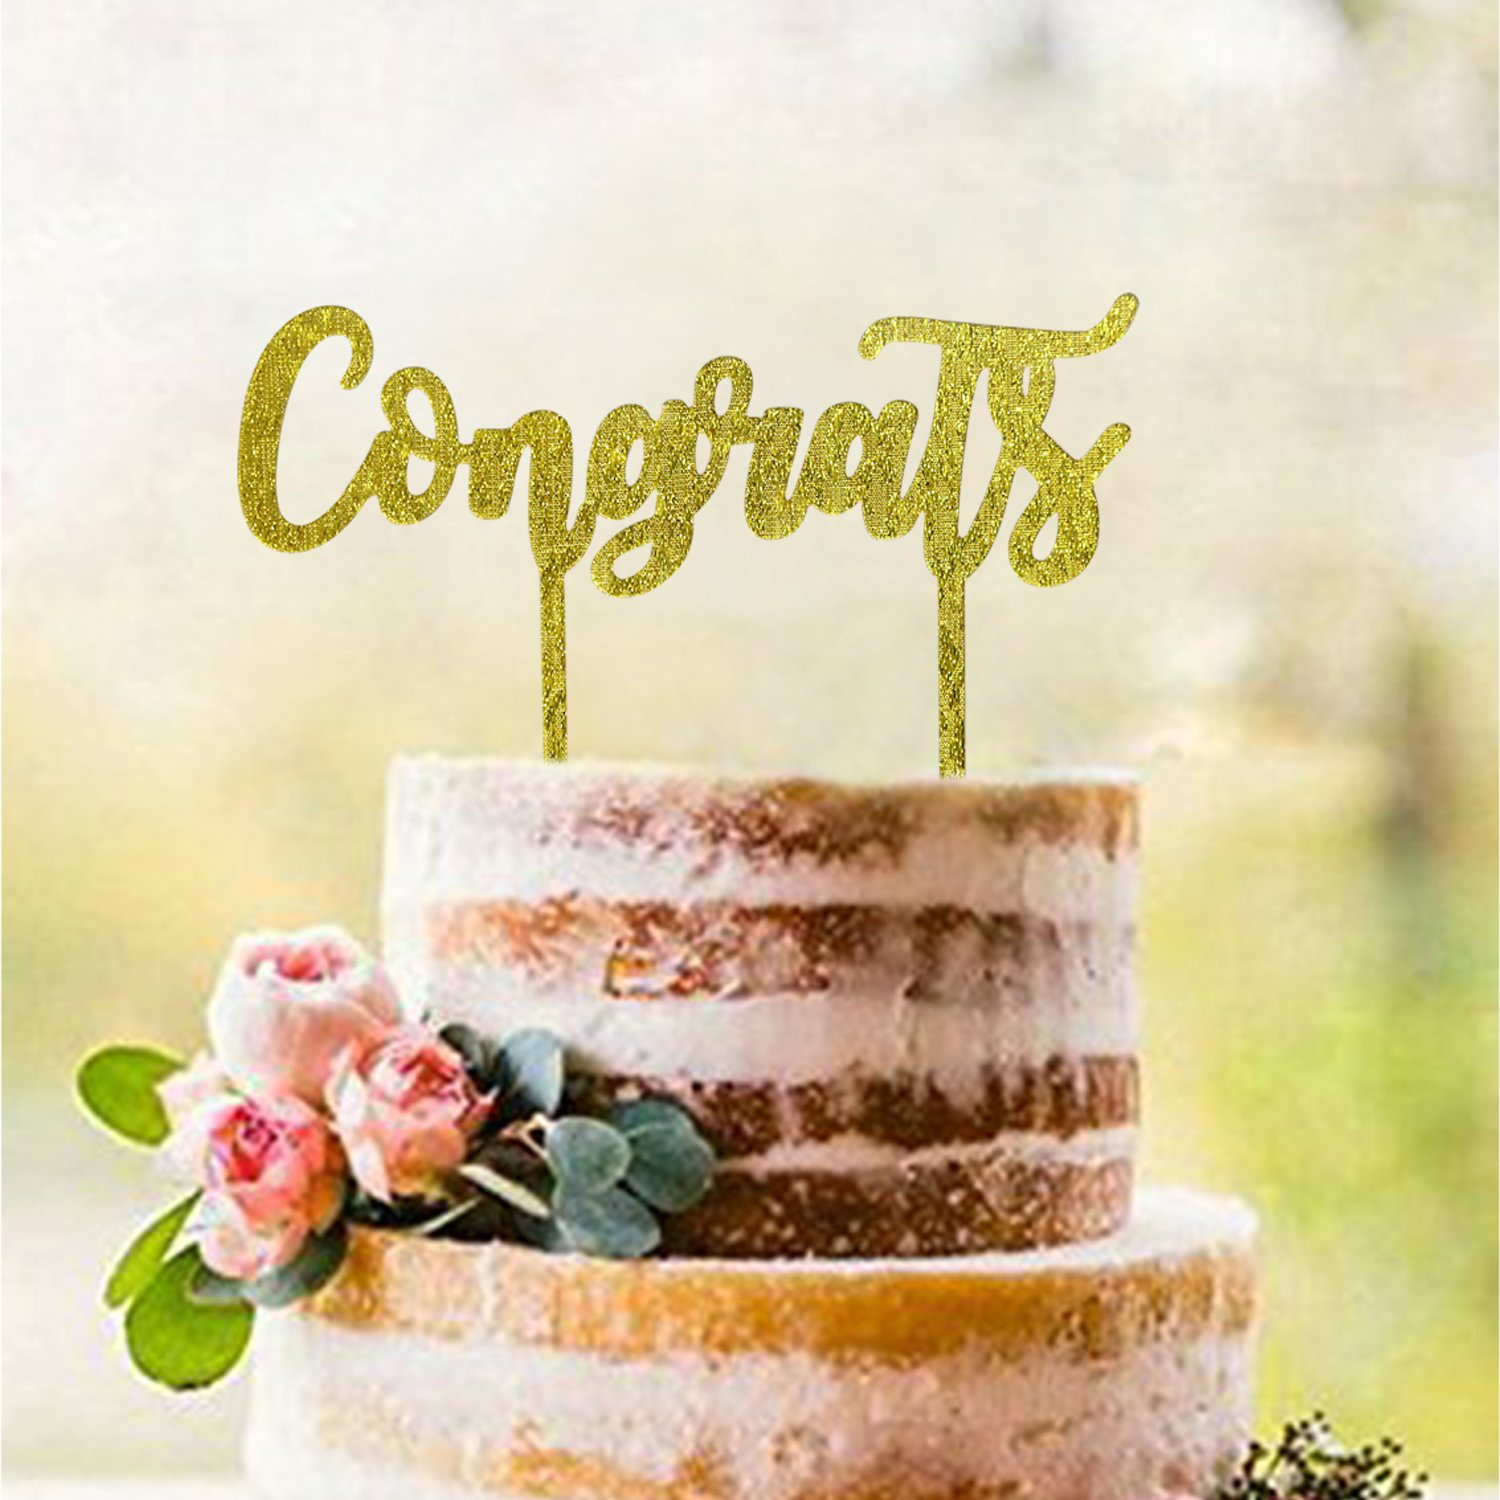 Buy Gold Congrats Cake Topper | Acrylic Graduation Cake Toppers 2018 ...